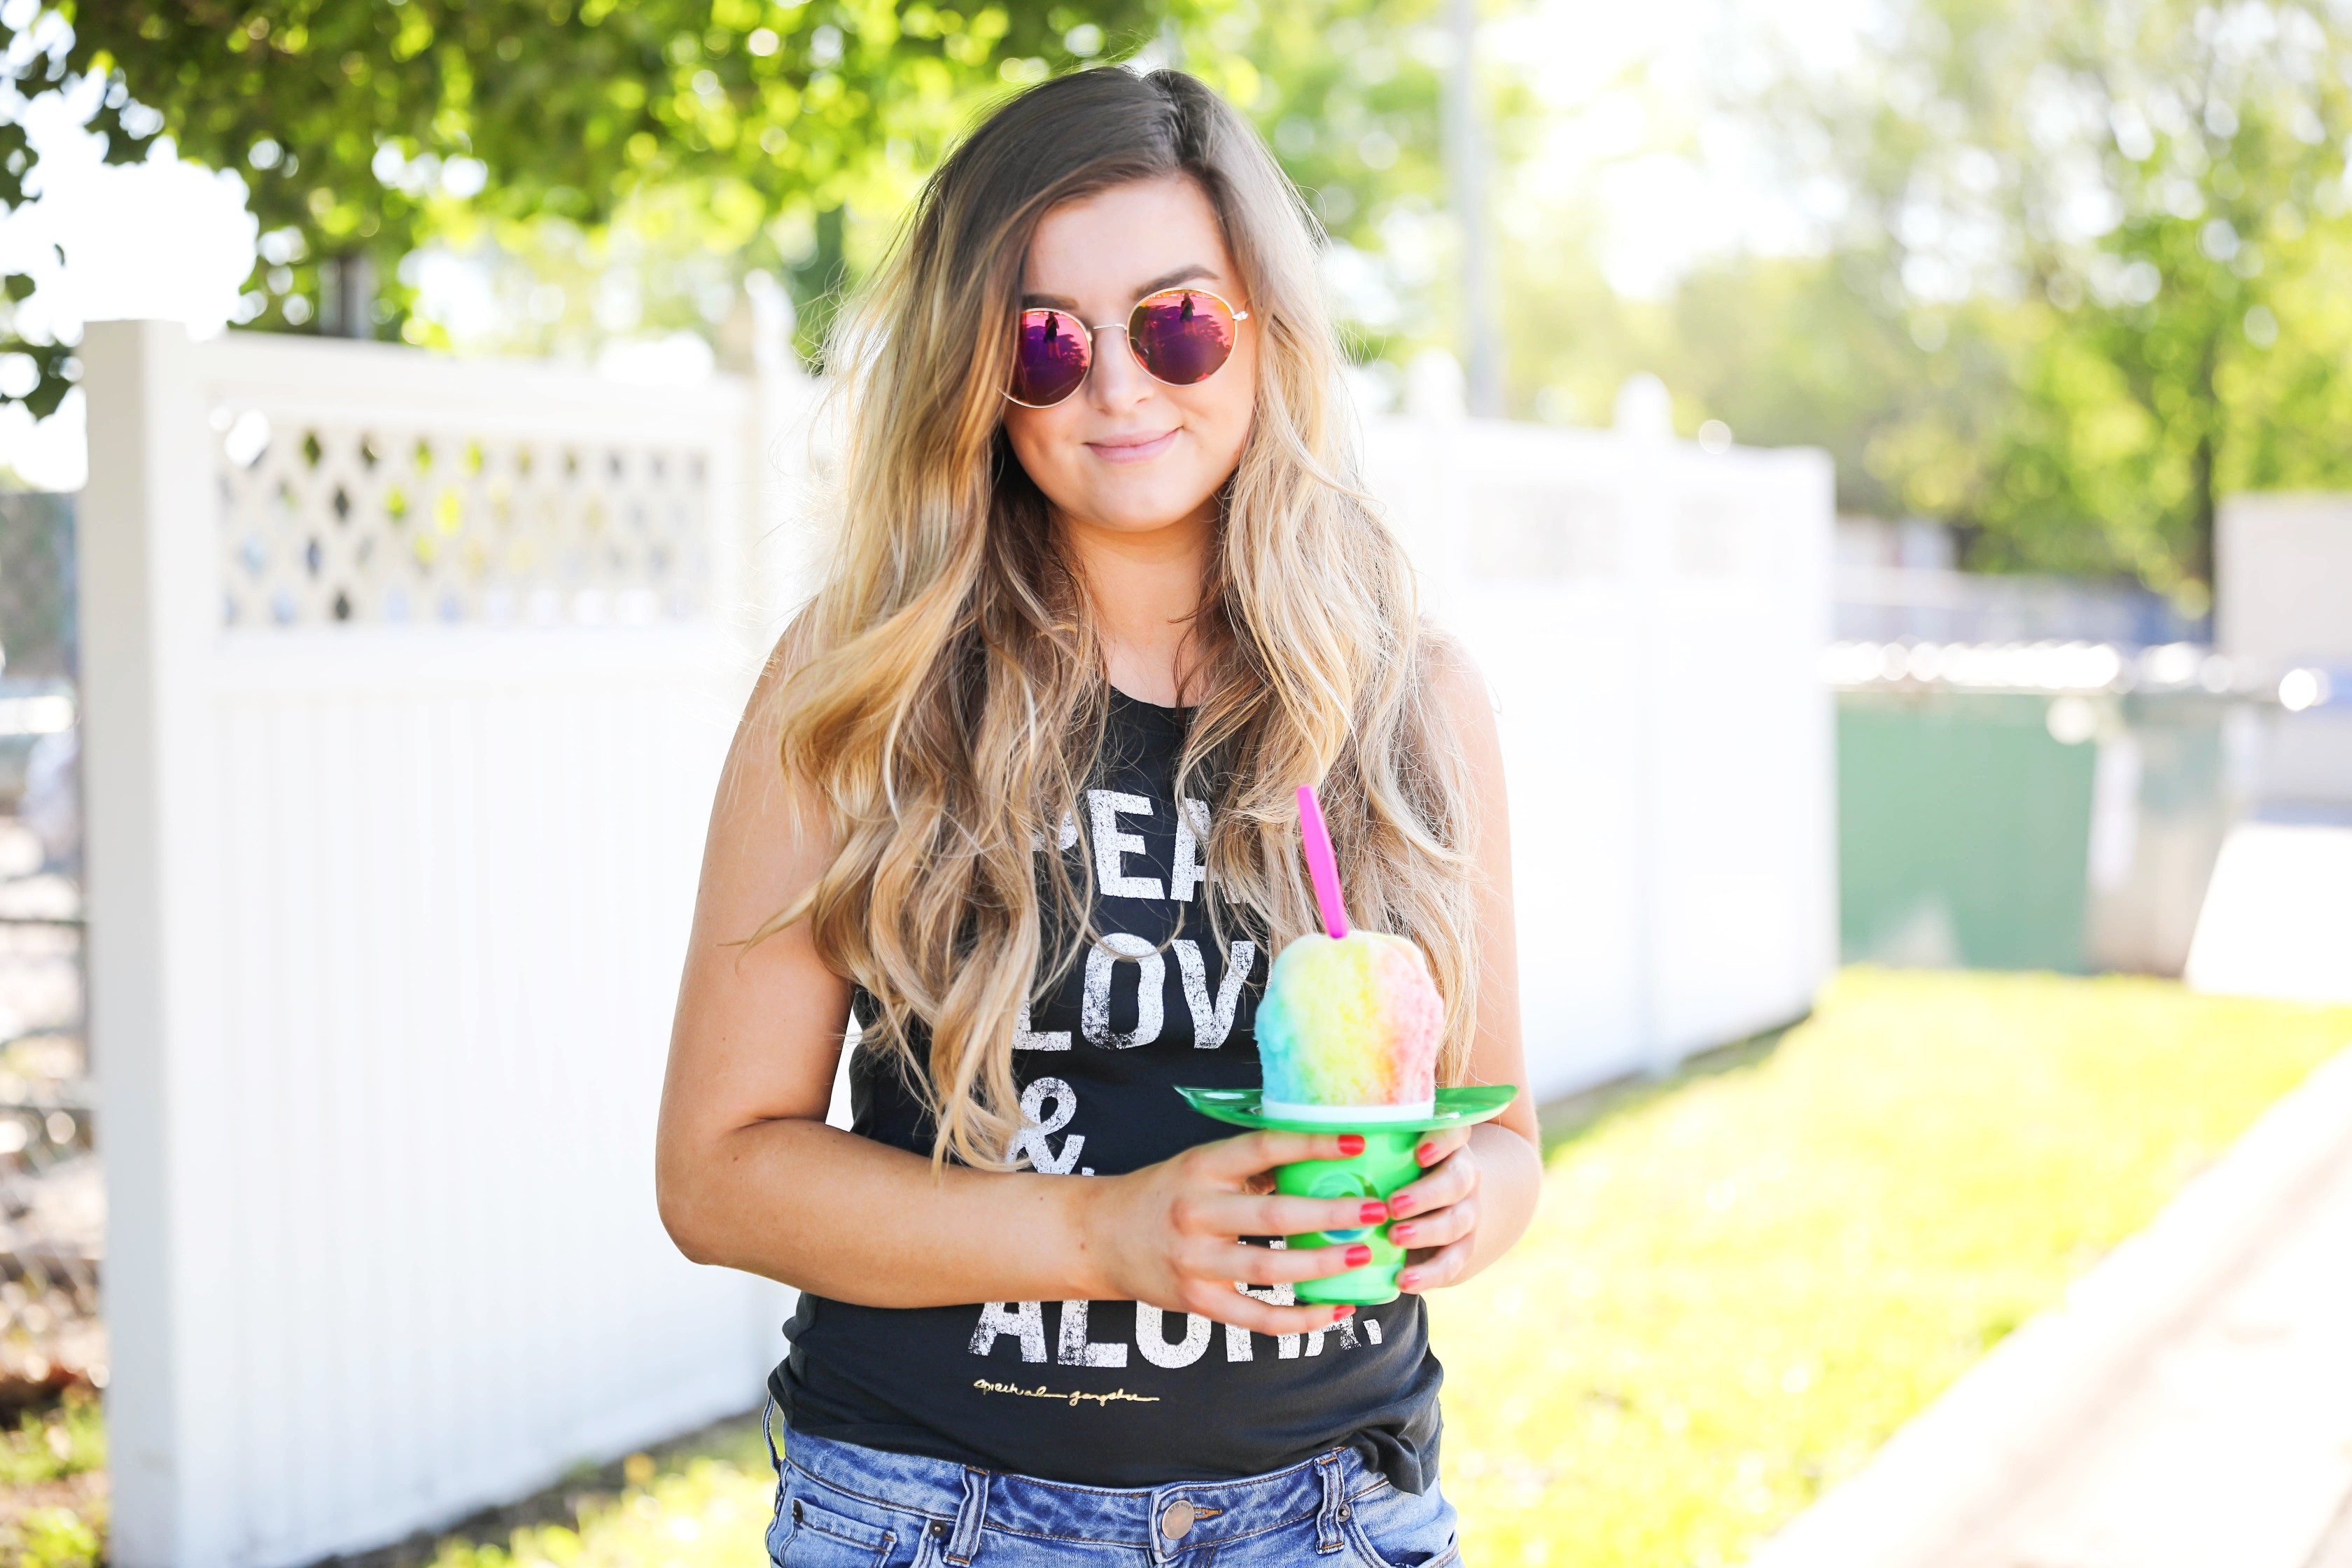 Aloha Summer Spiritual Gangster Top with snow cone by fashion blogger Lauren Lindmark on fashion blog daily dose of charm dailydoseofcharm.com